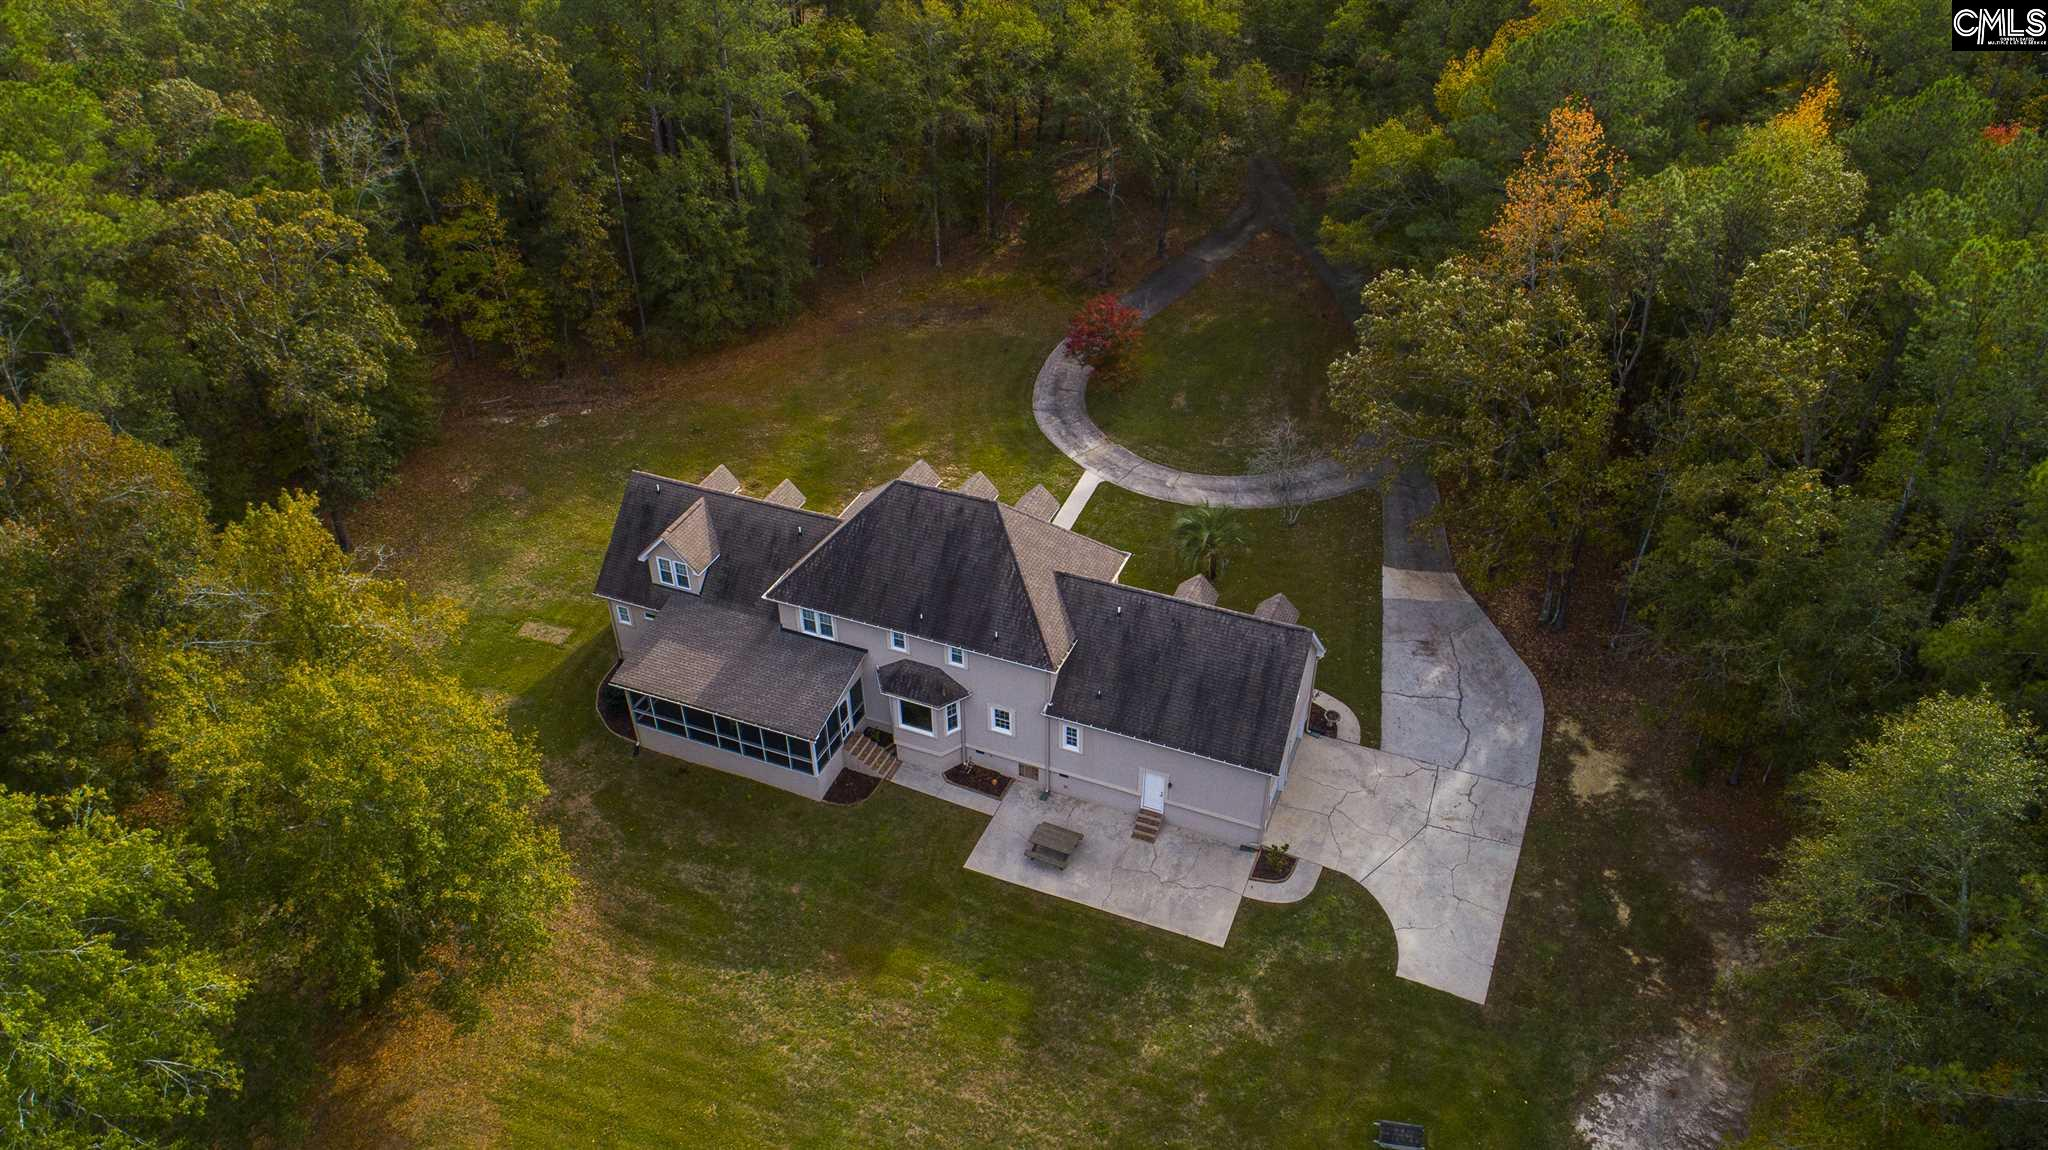 240 Turkey Farm Blythewood, SC 29016-9119